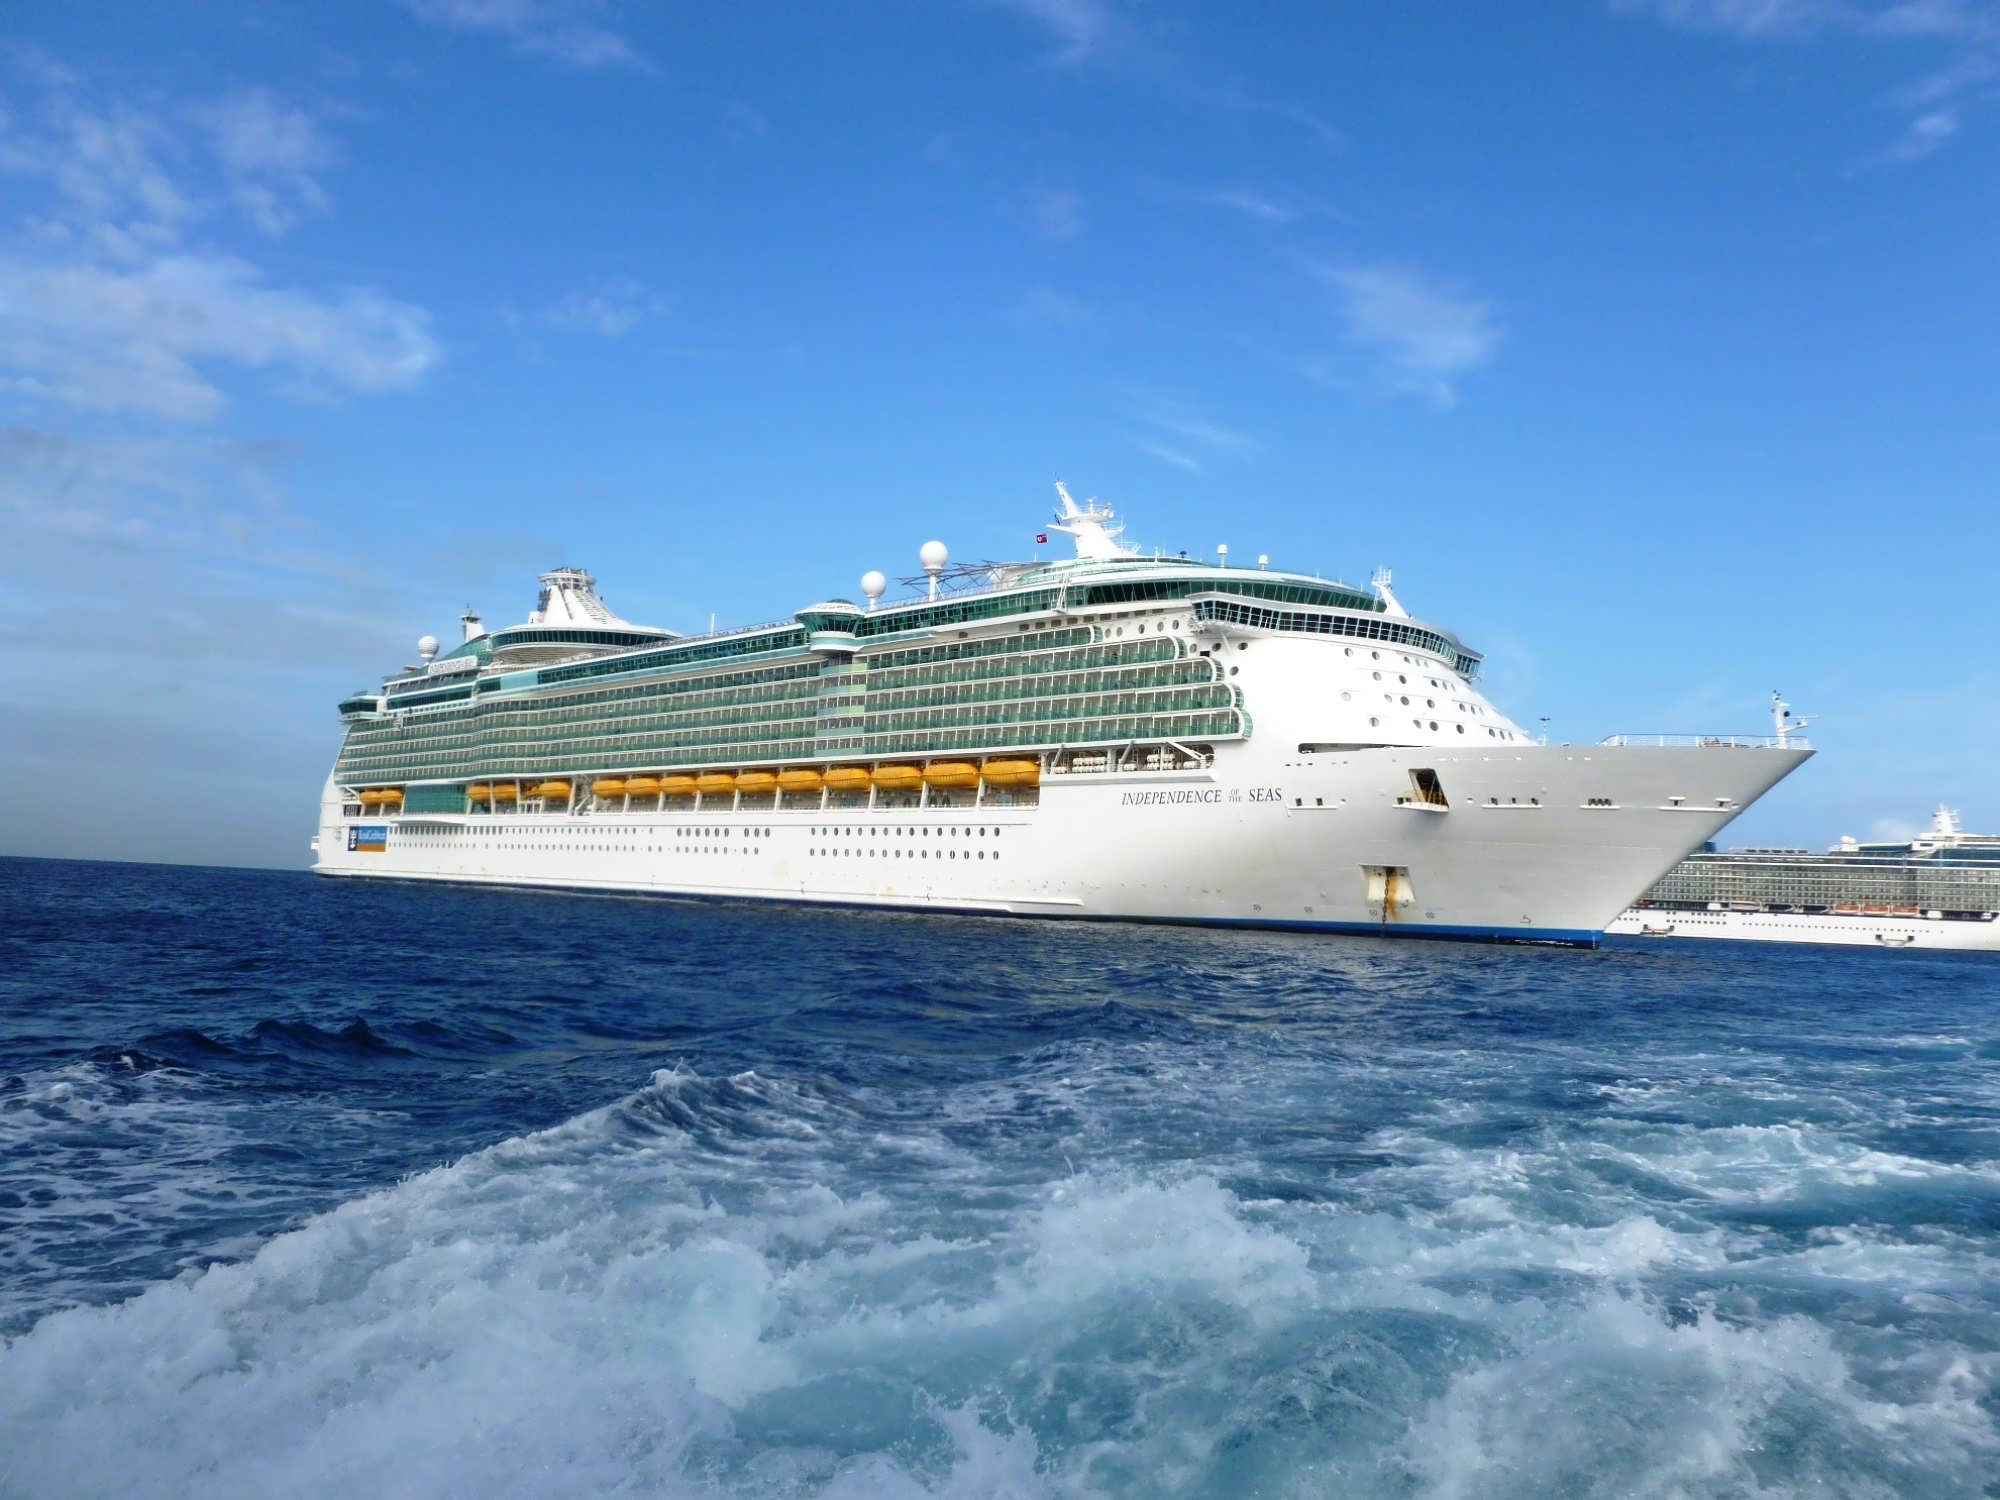 Royal Caribbean S Independence Of The Seas Our Cruise